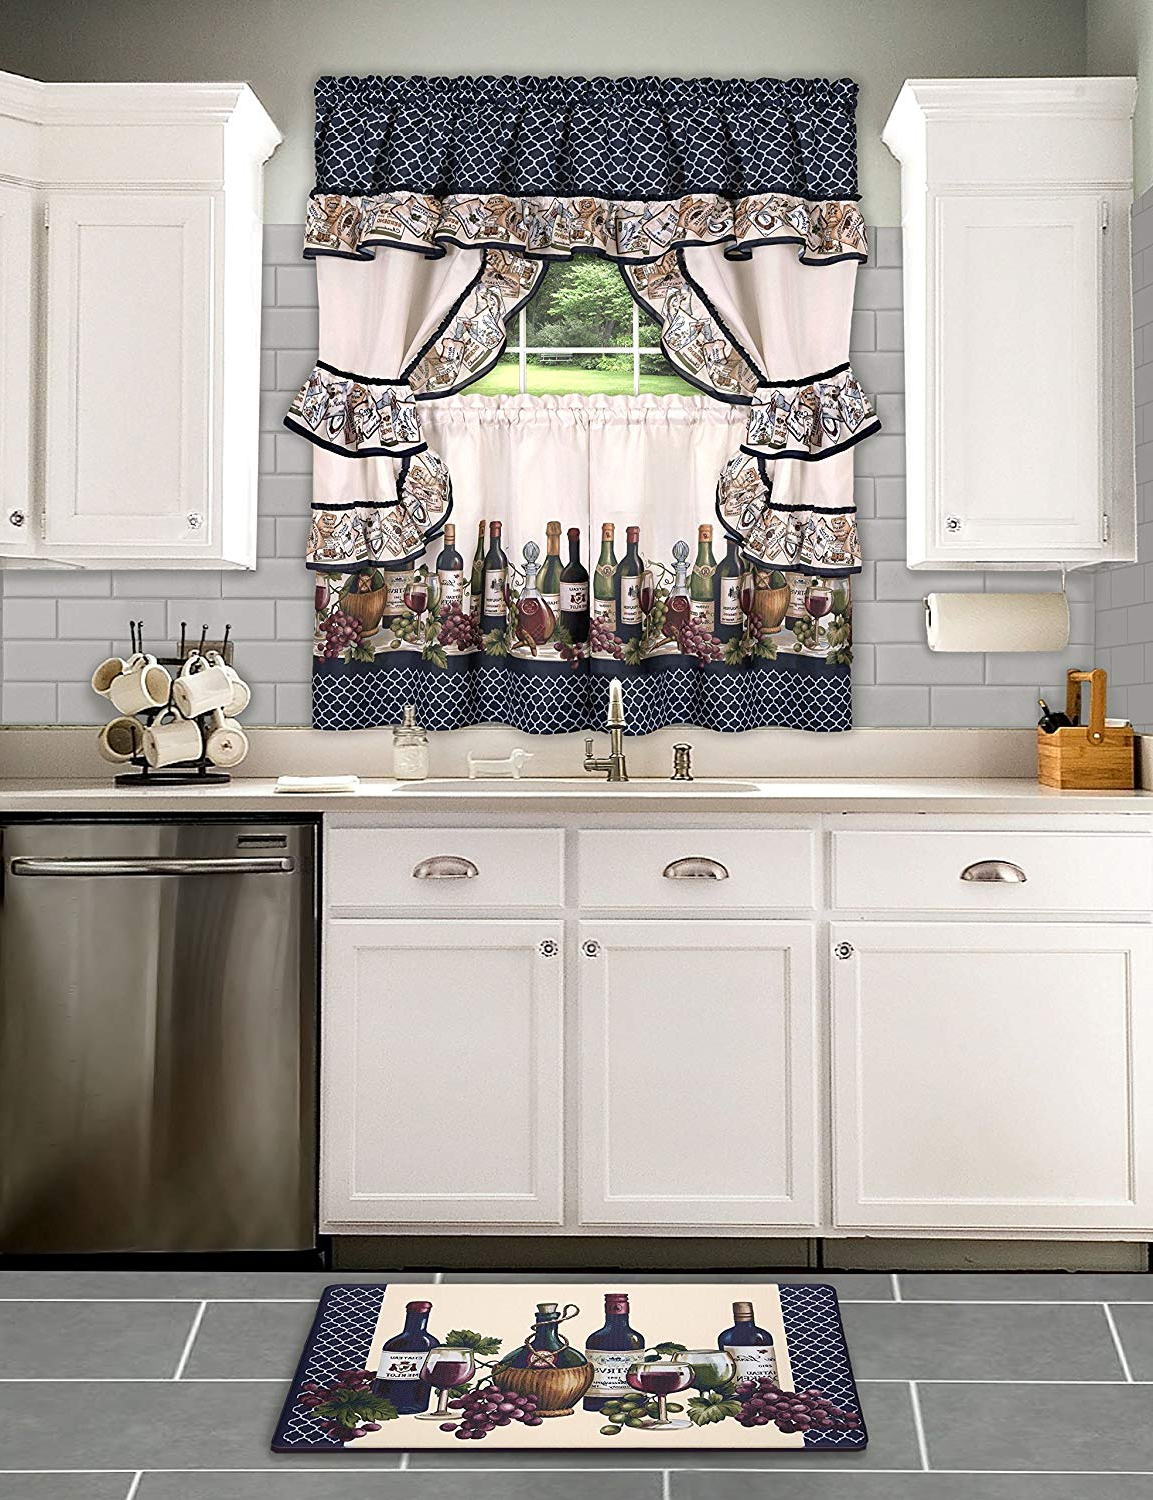 Most Current Chateau Wines Cottage Kitchen Curtain Tier And Valance Sets Pertaining To Achim Home Furnishings Chateau Window Curtain Cottage Set, 57 Inch X 36 Inch, Navy, 57 X 36, (Gallery 13 of 20)